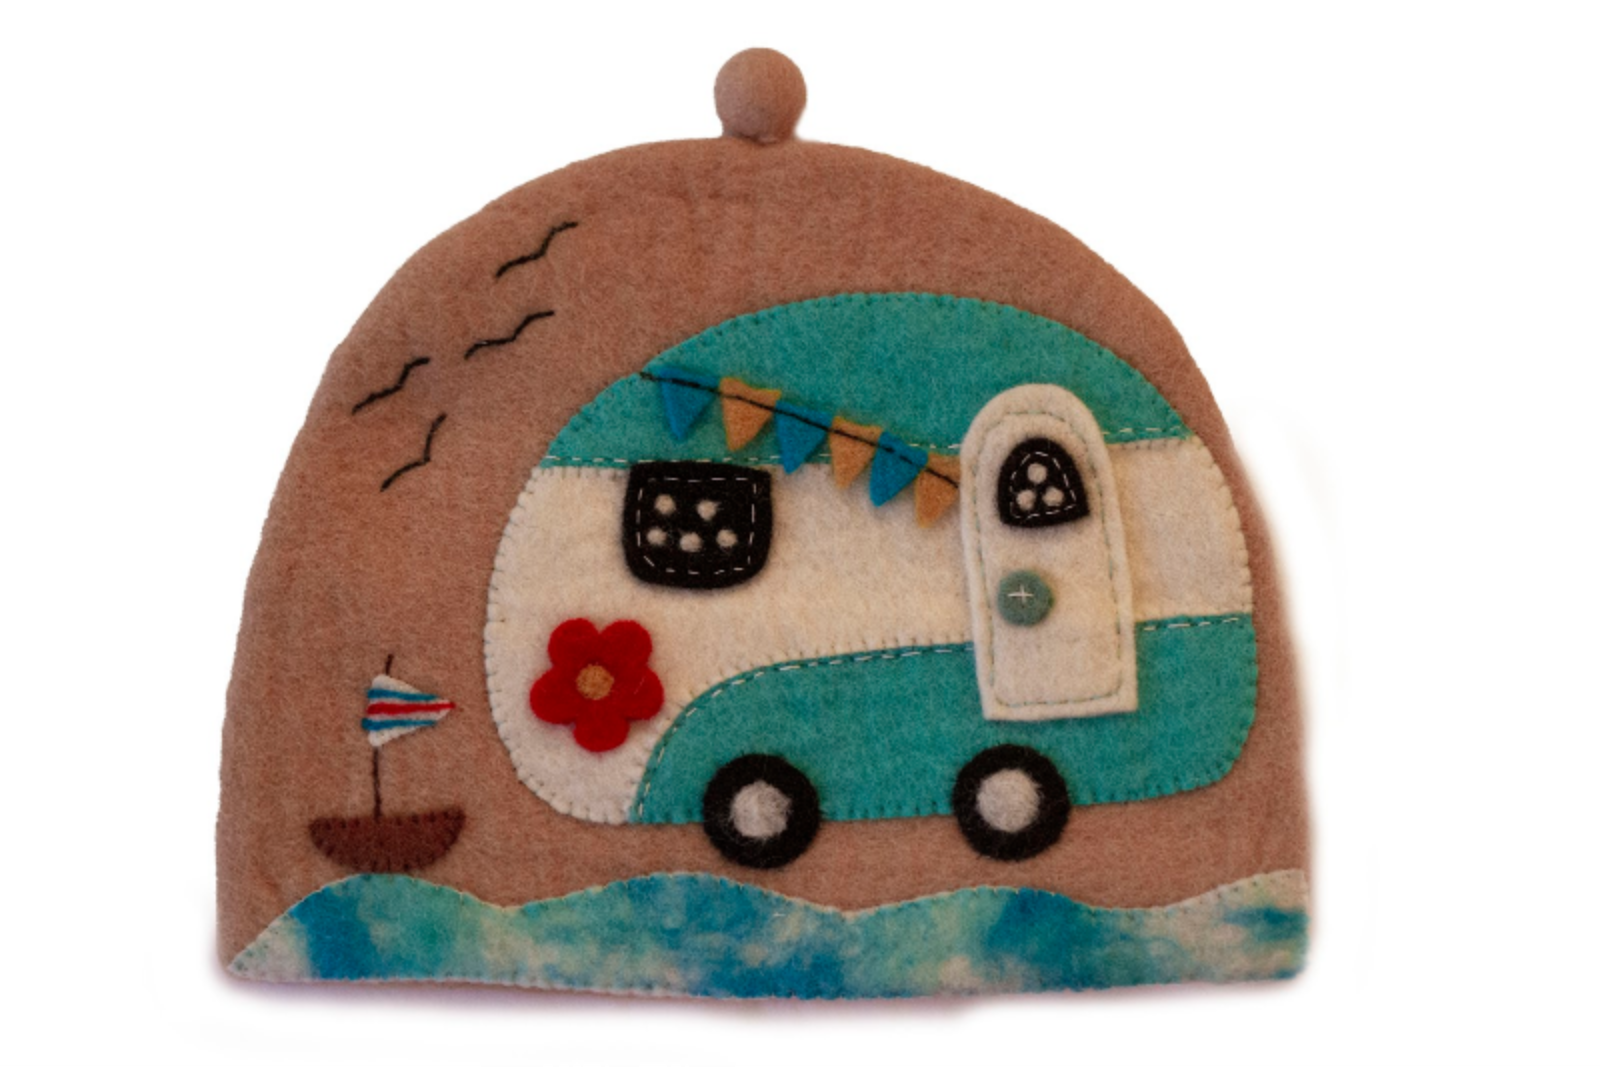 Handmade Felt Happy Camper Tea Cozy